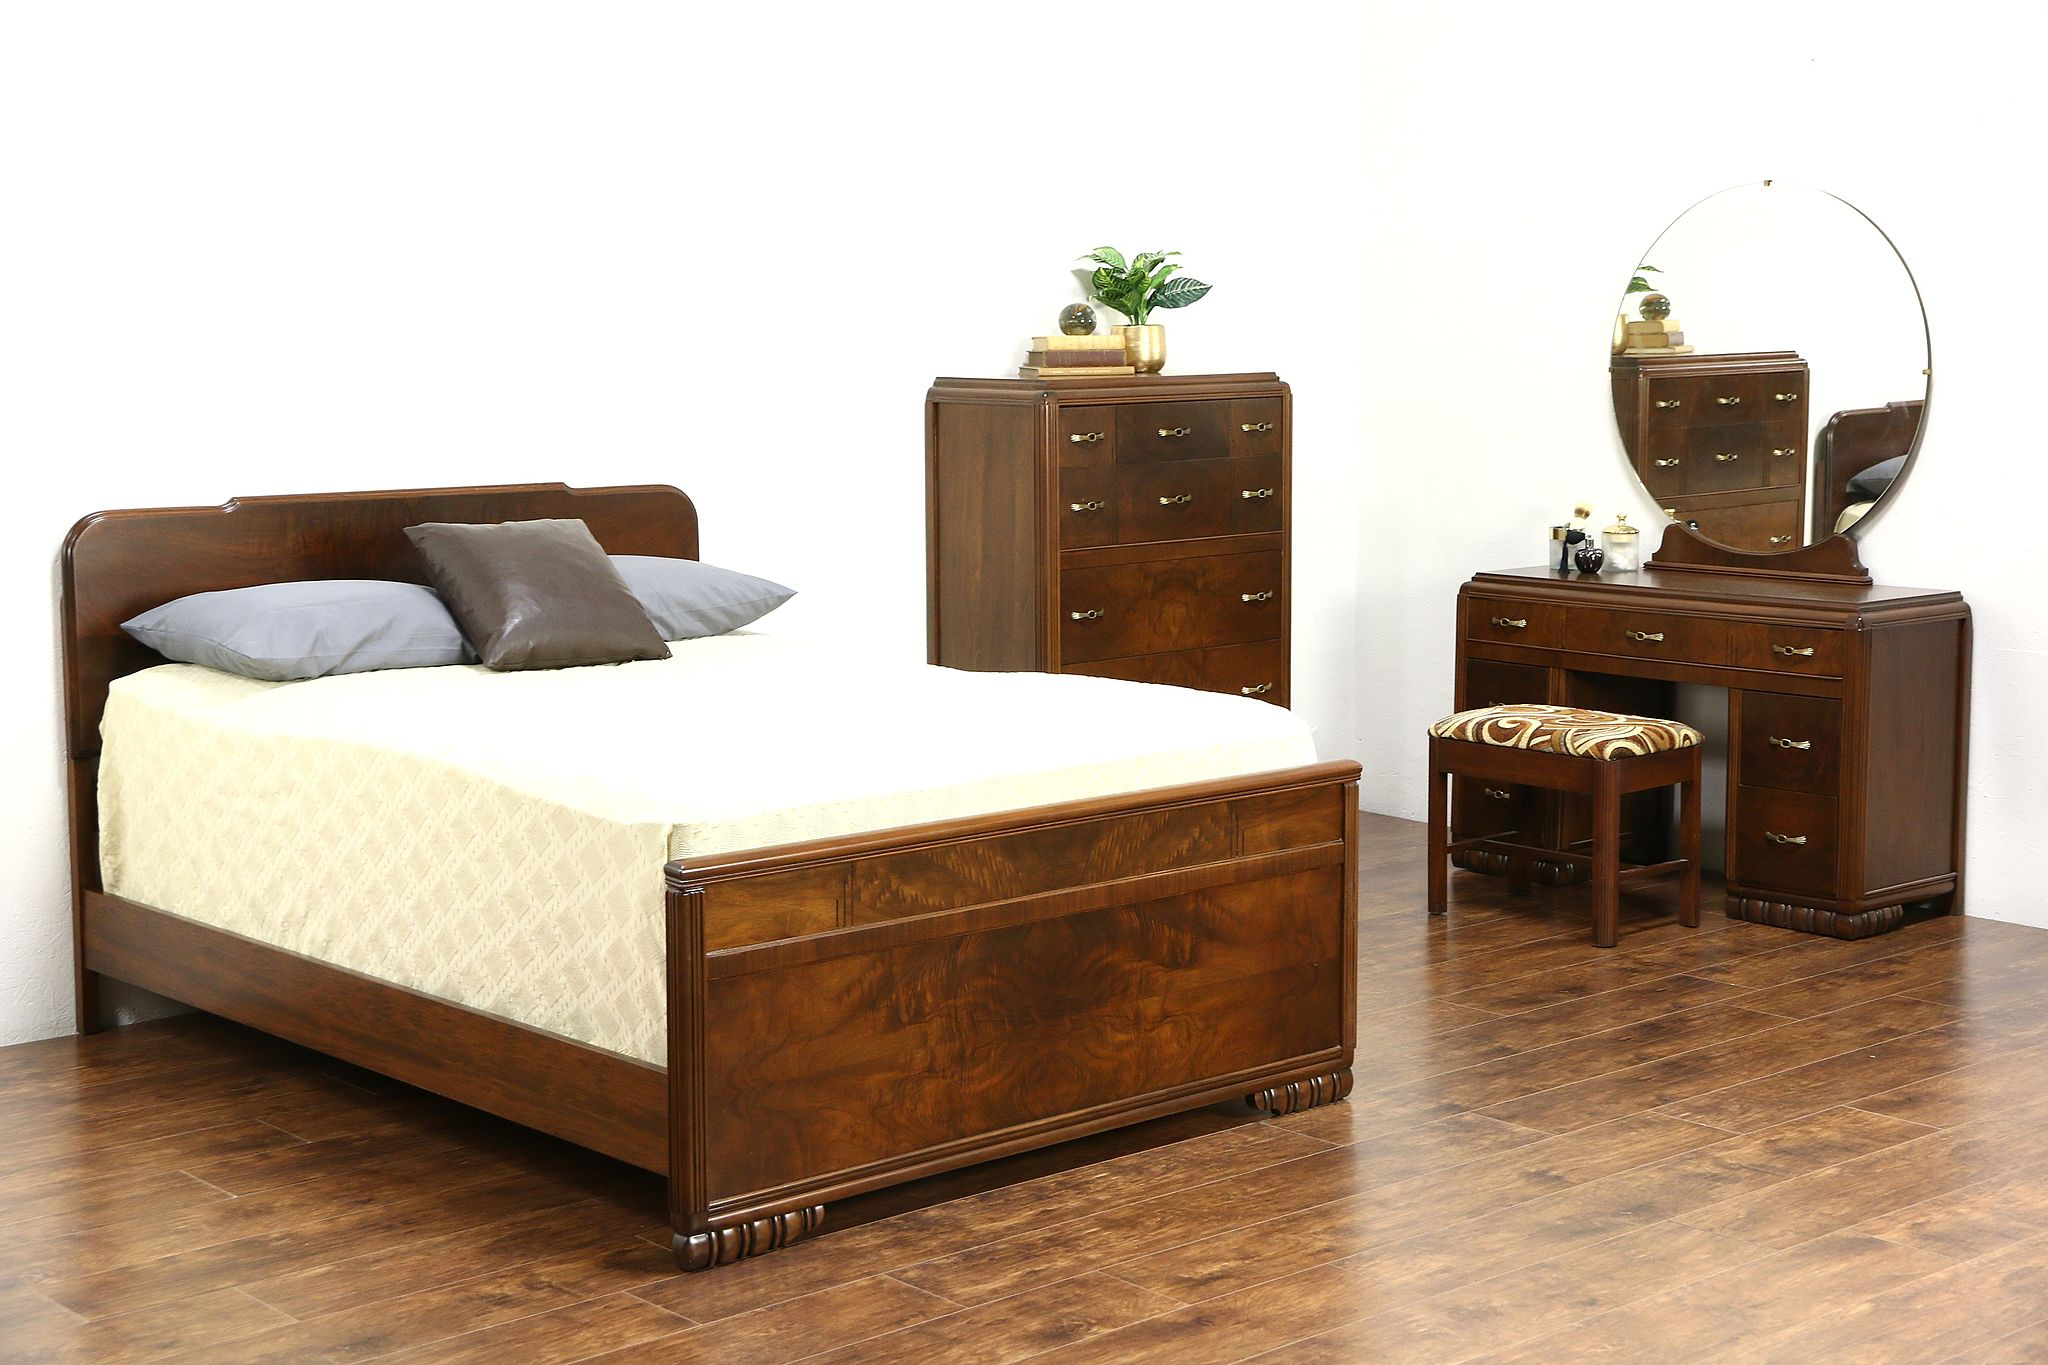 Art Deco 1940 Vintage 4 Pc. Walnut & Burl Bedroom Set, Full Size Bed &  Vanity